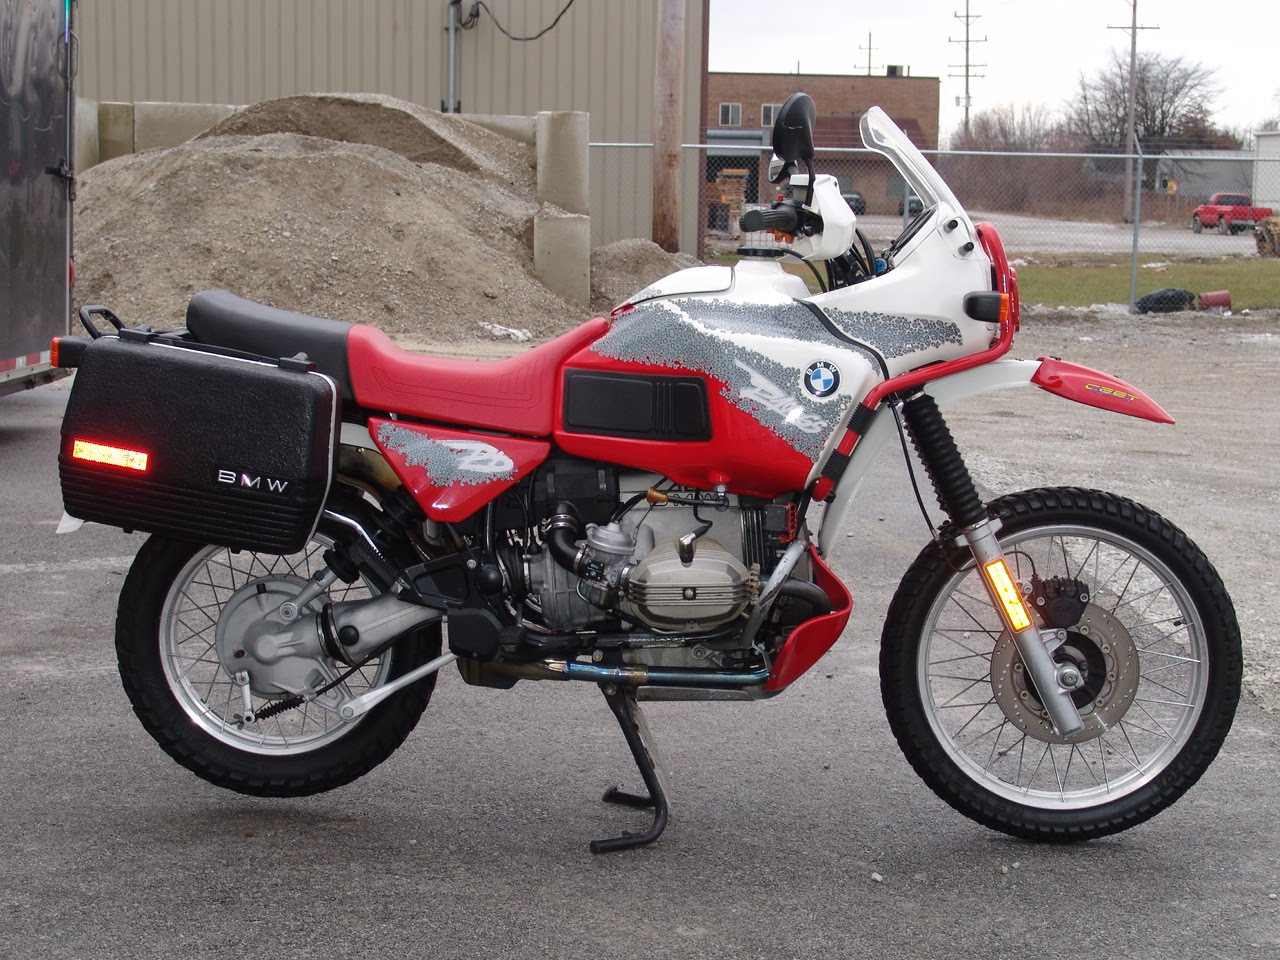 BMW R100GS 1995 images #6384